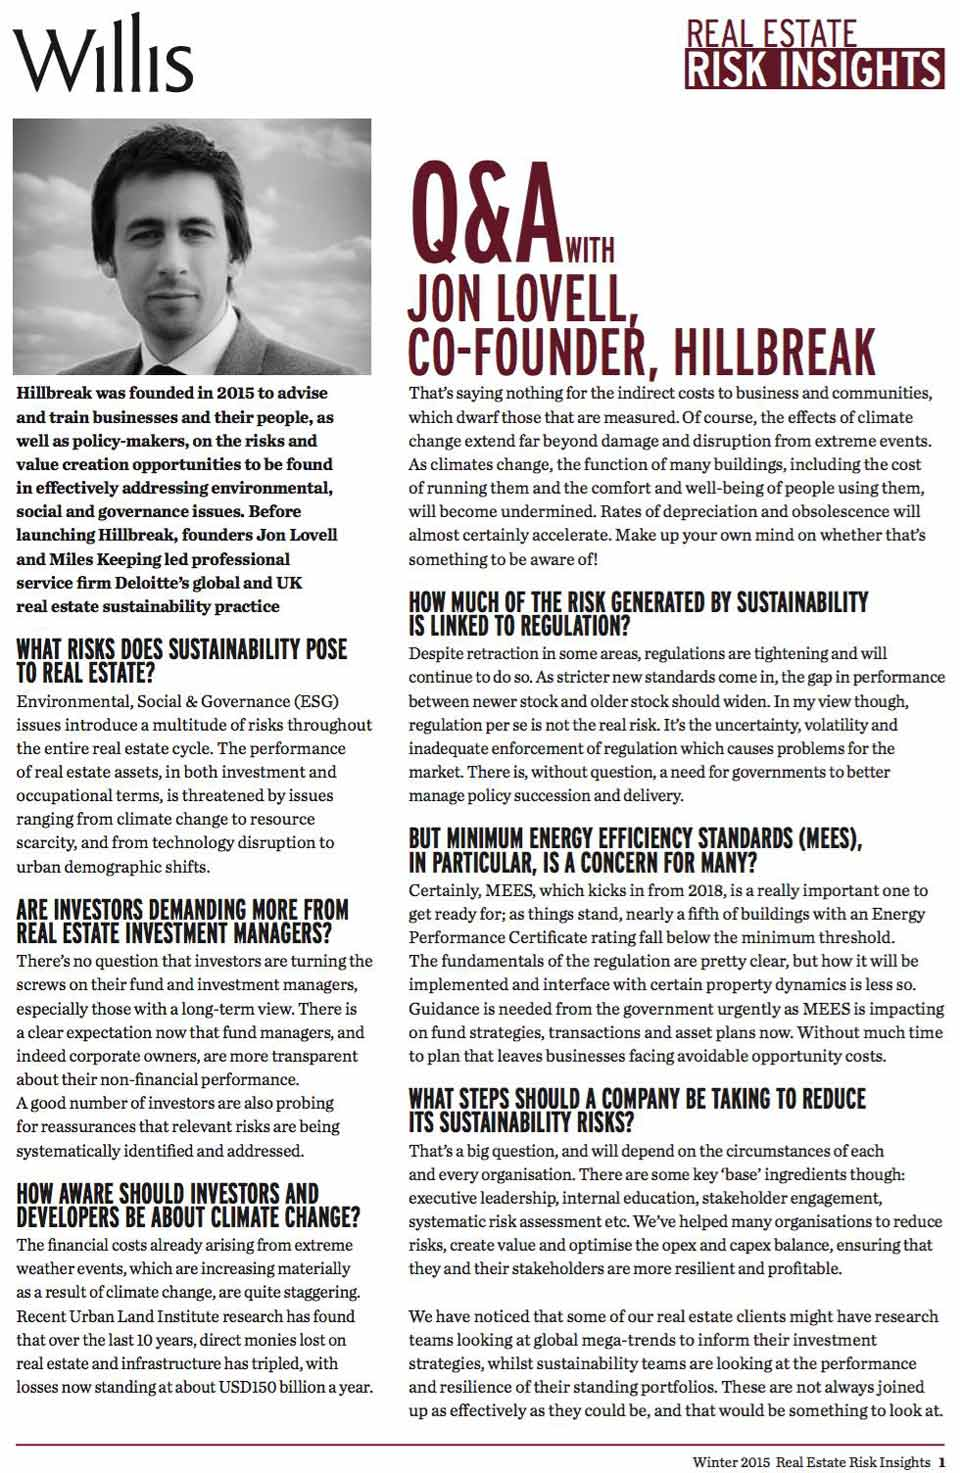 Jon Lovell Q&A, Willis Real Estate Risk Insights